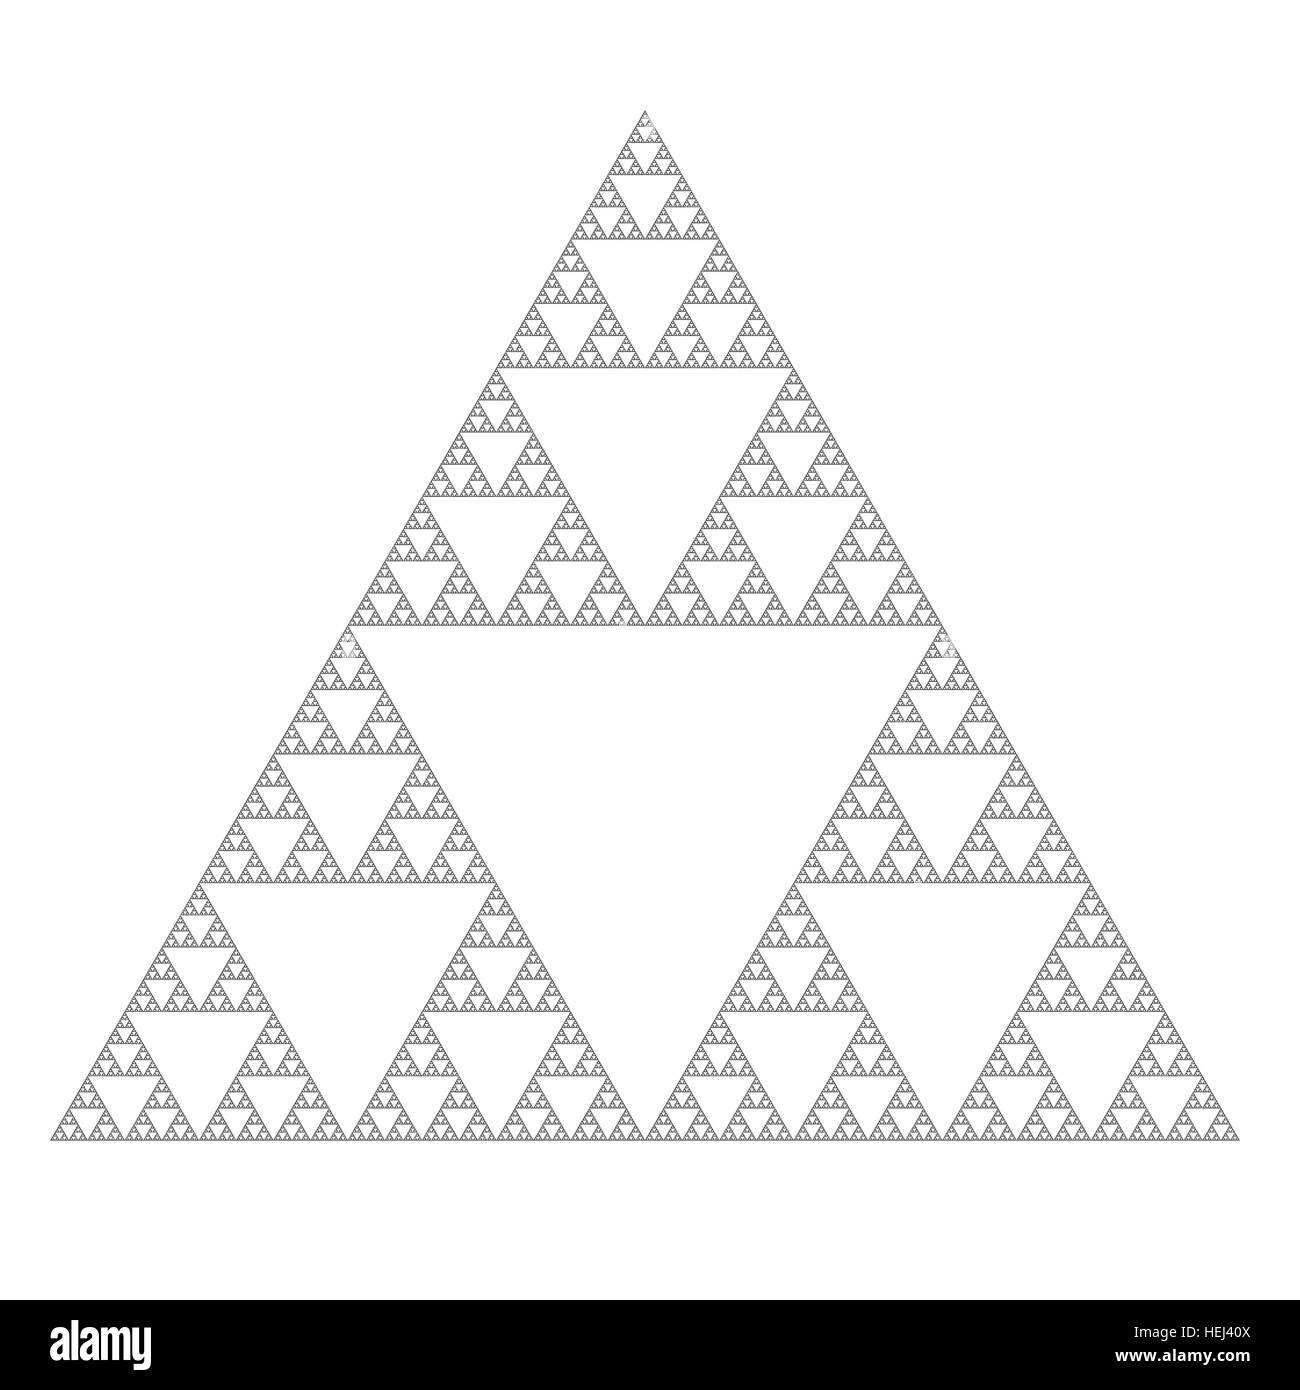 the sierpinski triangle, fractal iterated shape - Stock Image